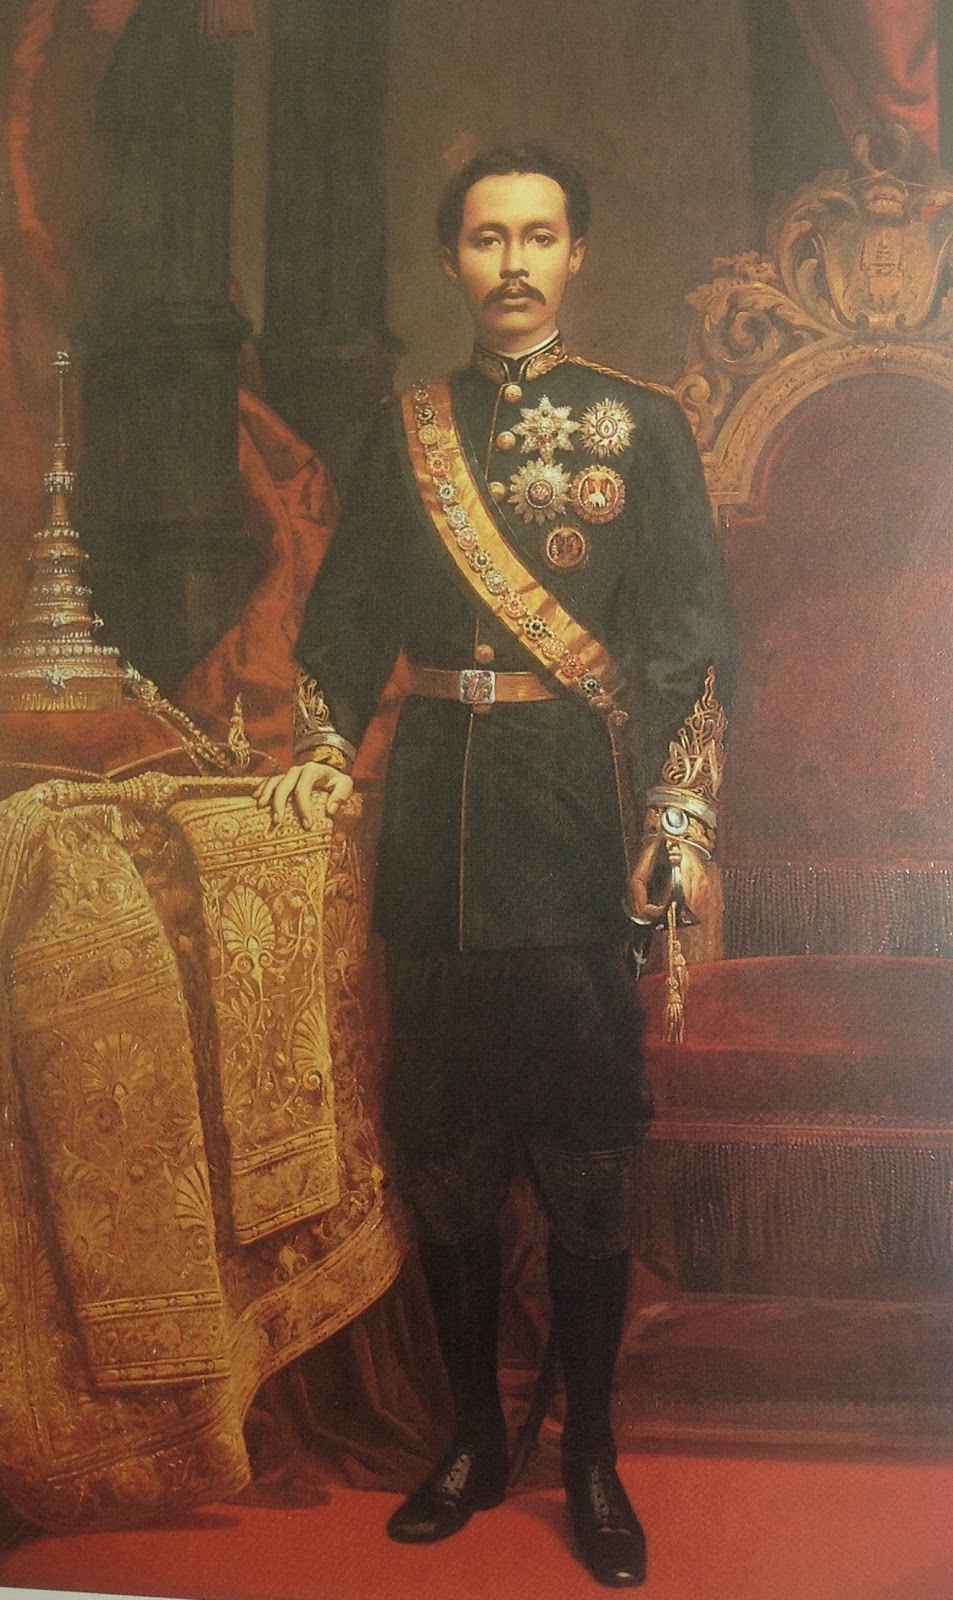 King Chulalongkorn.jpg